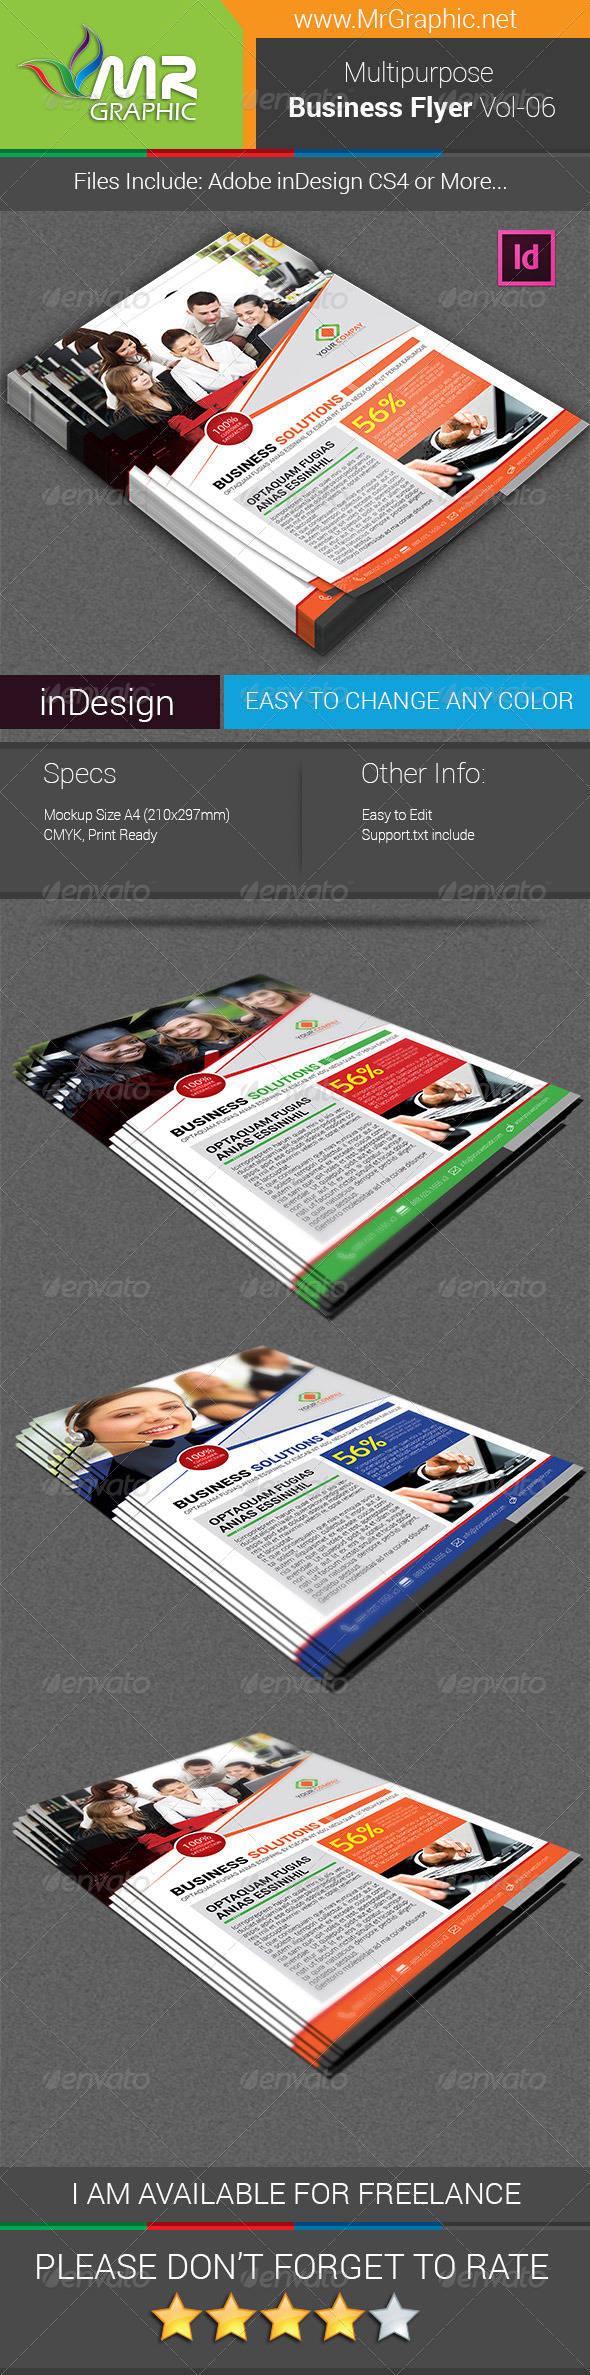 Multipurpose Business Flyer Vol-06 - Corporate Flyers